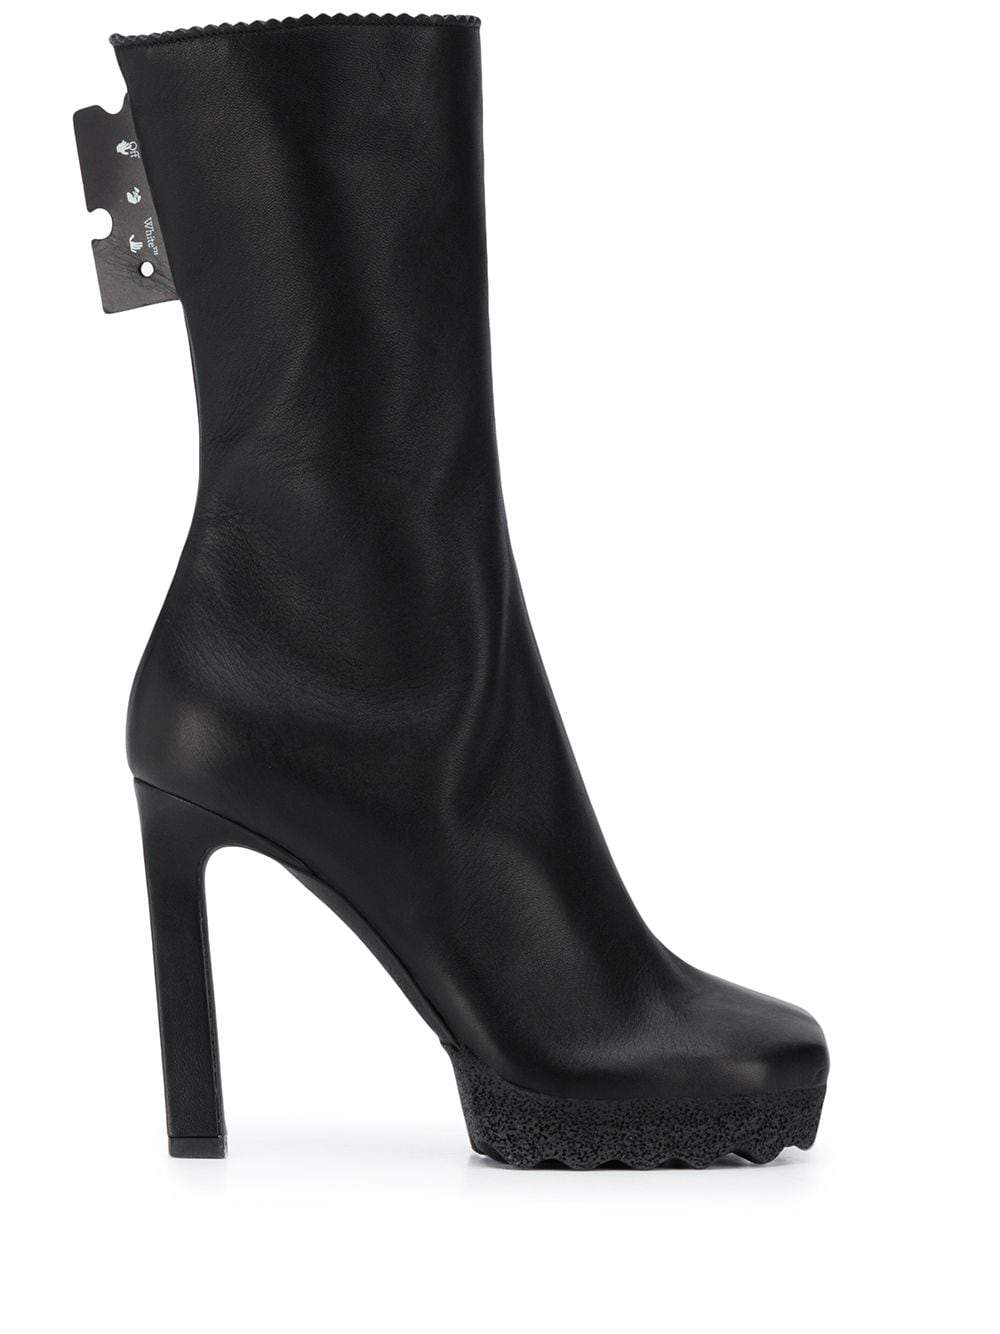 OFF-WHITE Nappa Ankle Boots Black - Maison De Fashion